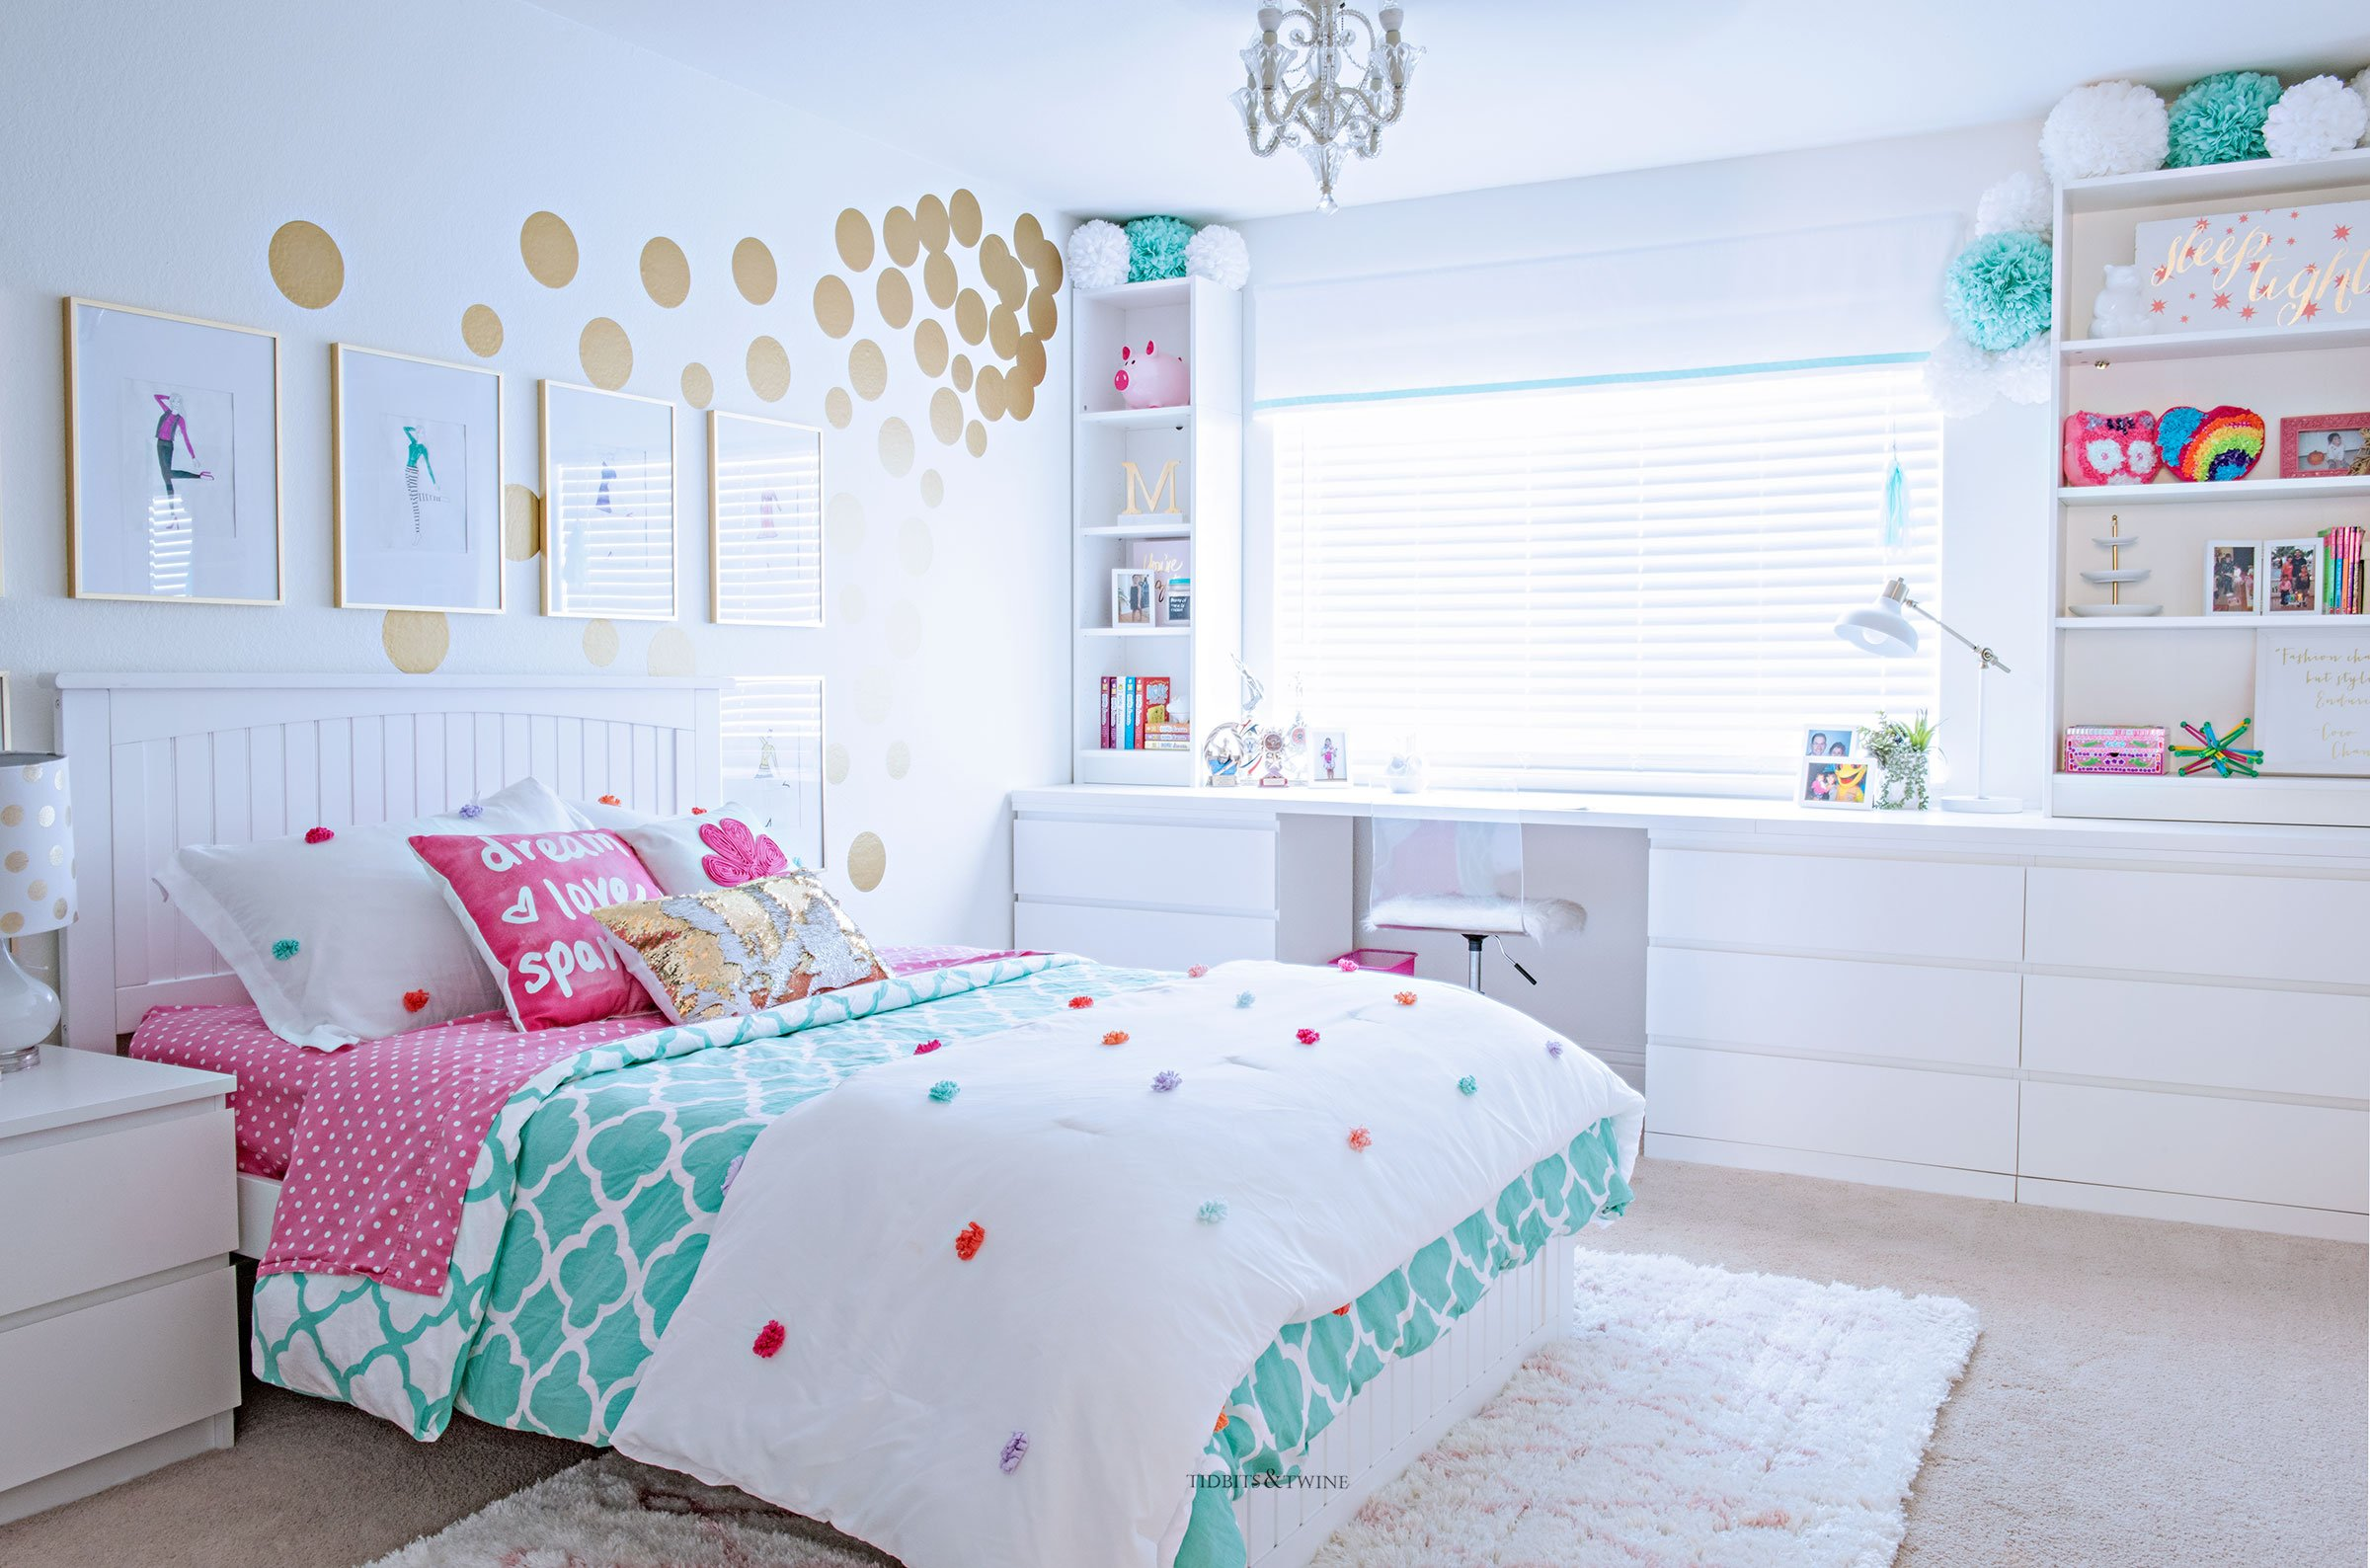 Tween girl bedroom makeover in turquoise and white. Budget-friendly with lots of storage with built-ins around window